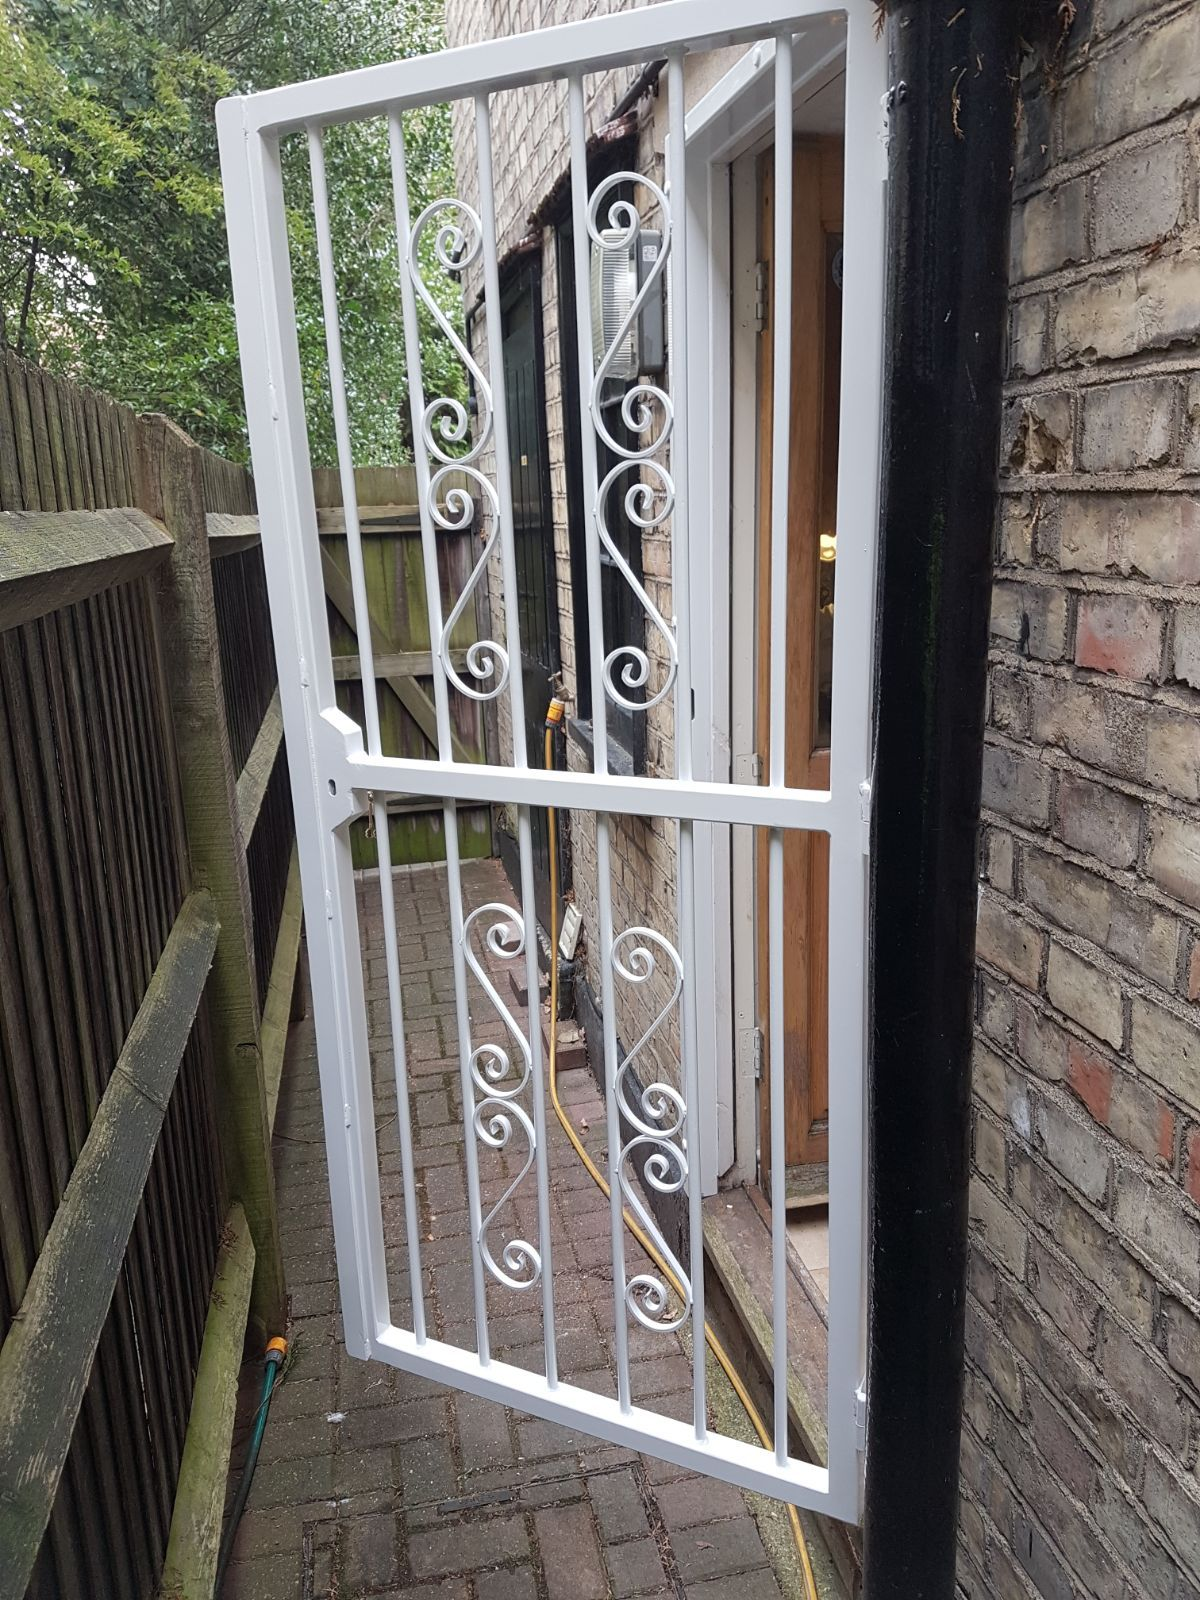 Our RSG3000 decorative door gates do not only provide